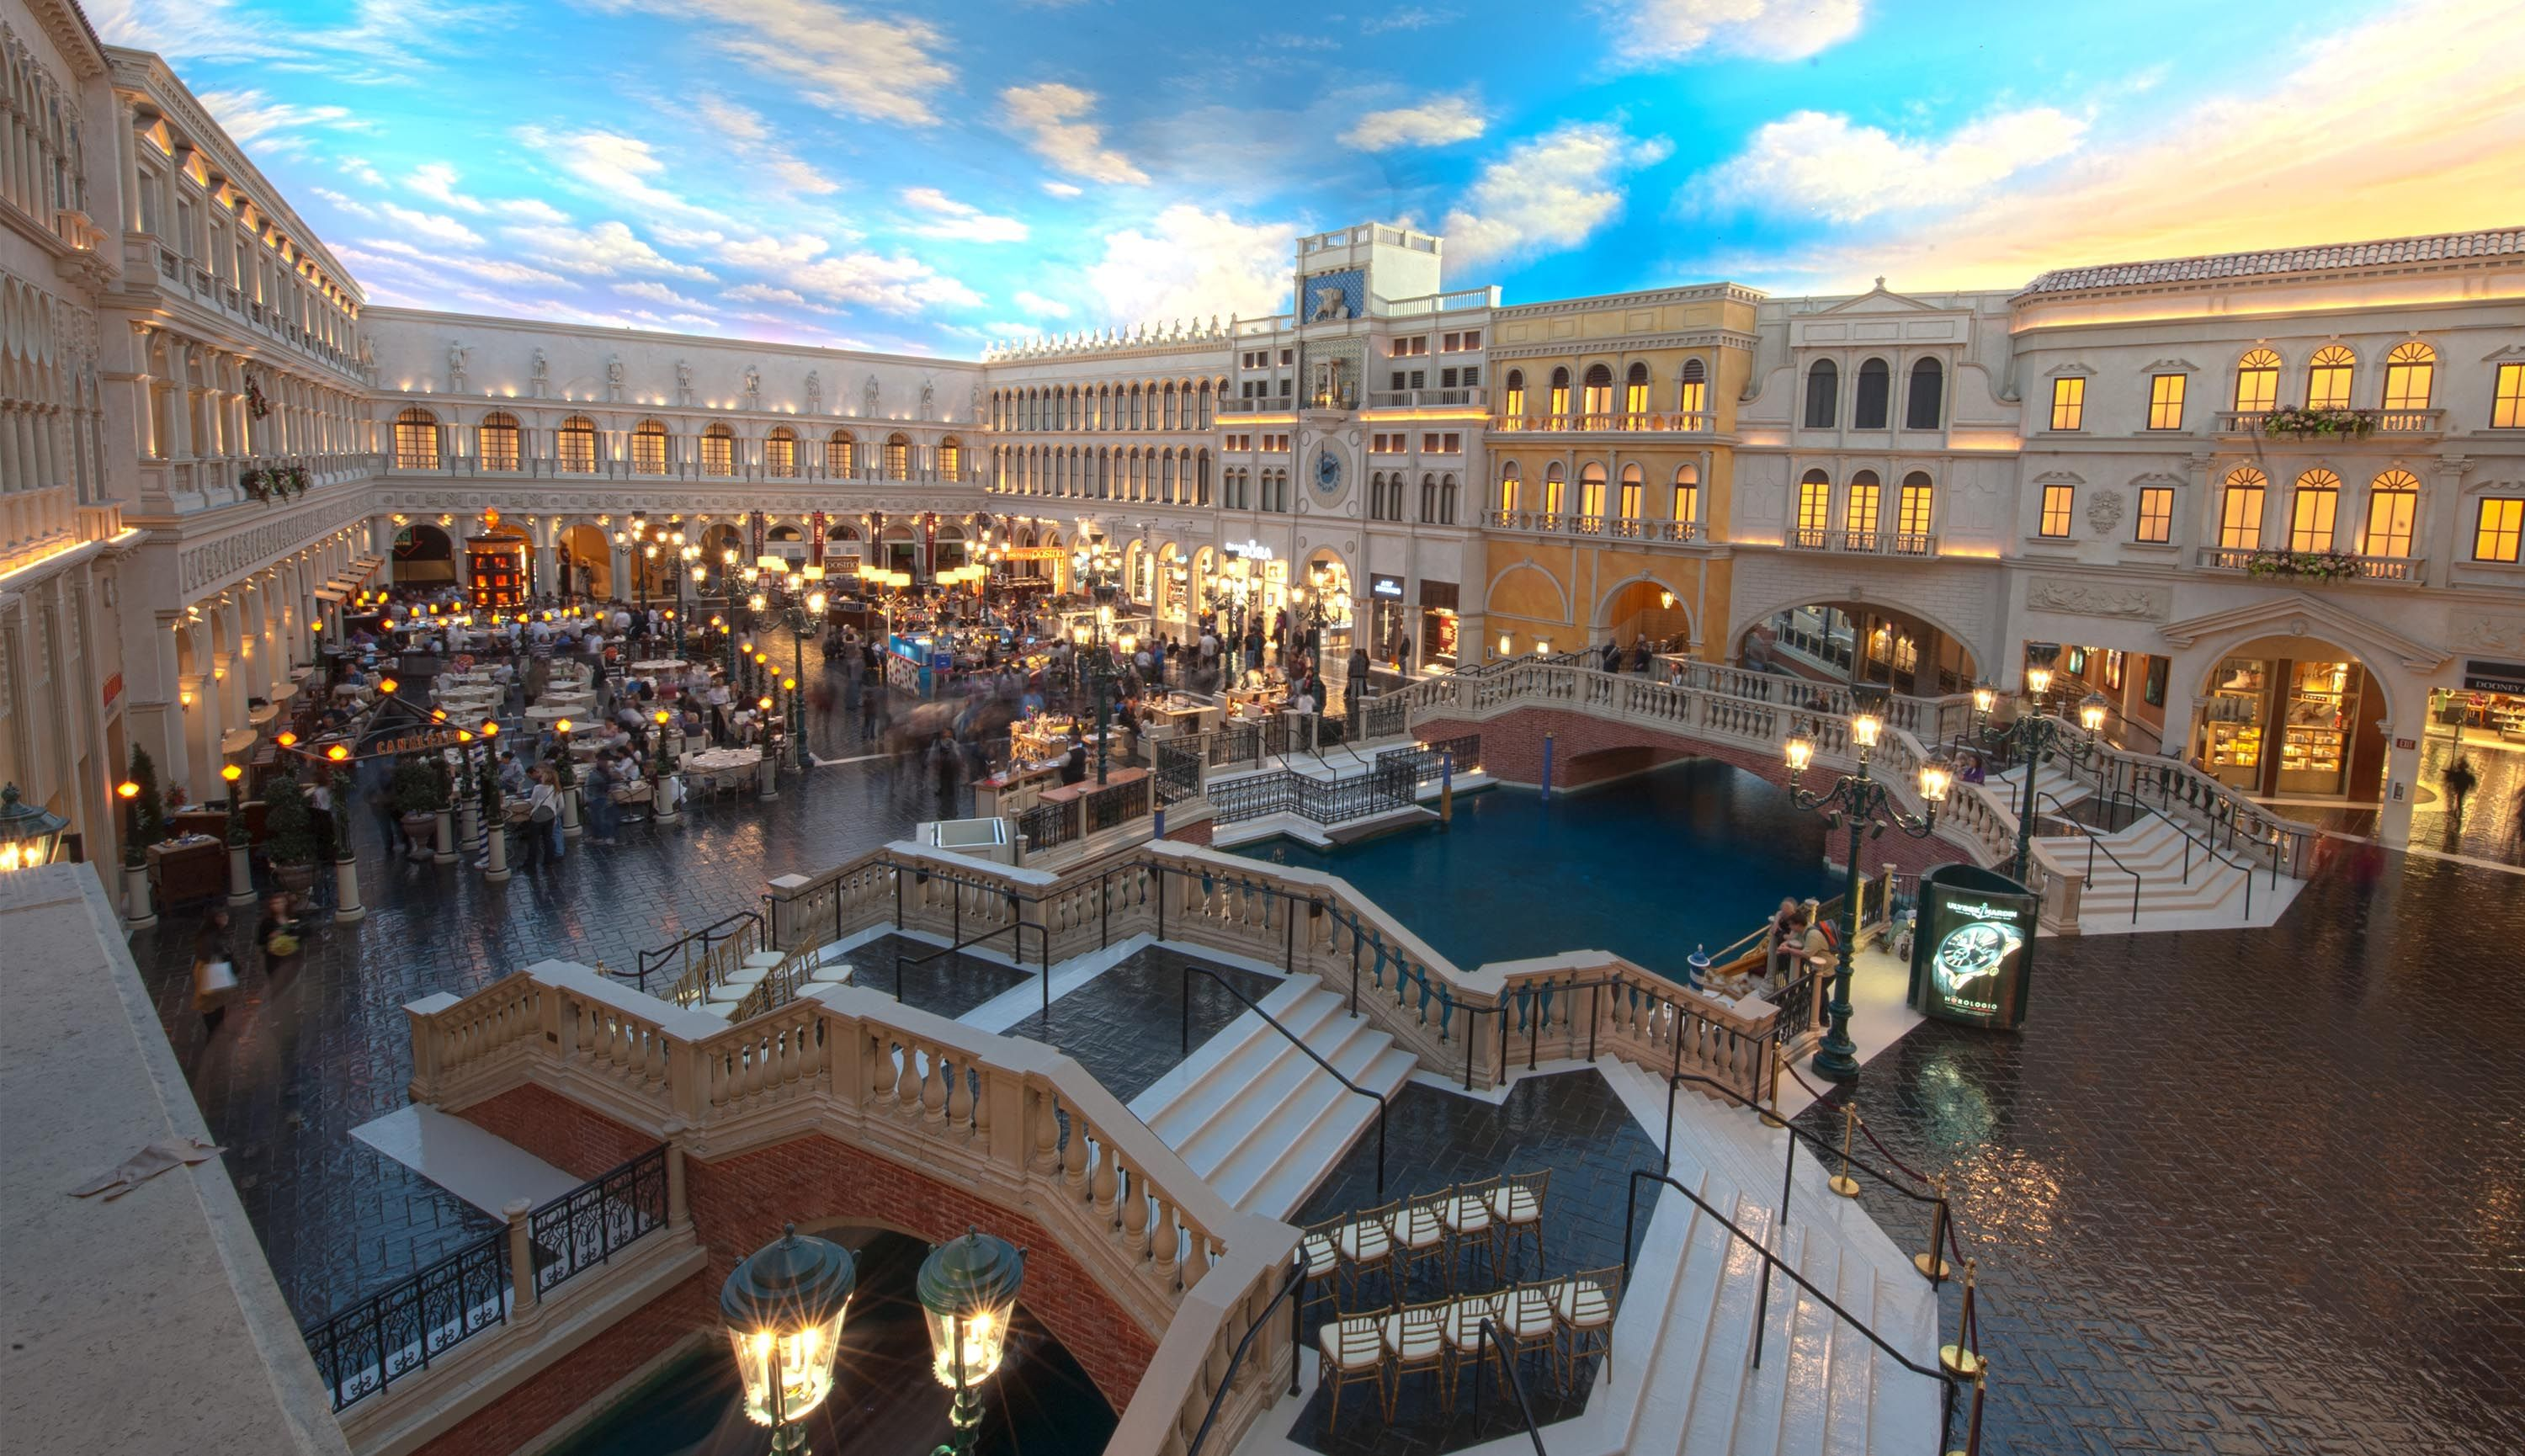 Charm Of Italy To Your Wedding Ceremony When You Plan Las Vegas Destination At The Venetian We Offer Several Packages